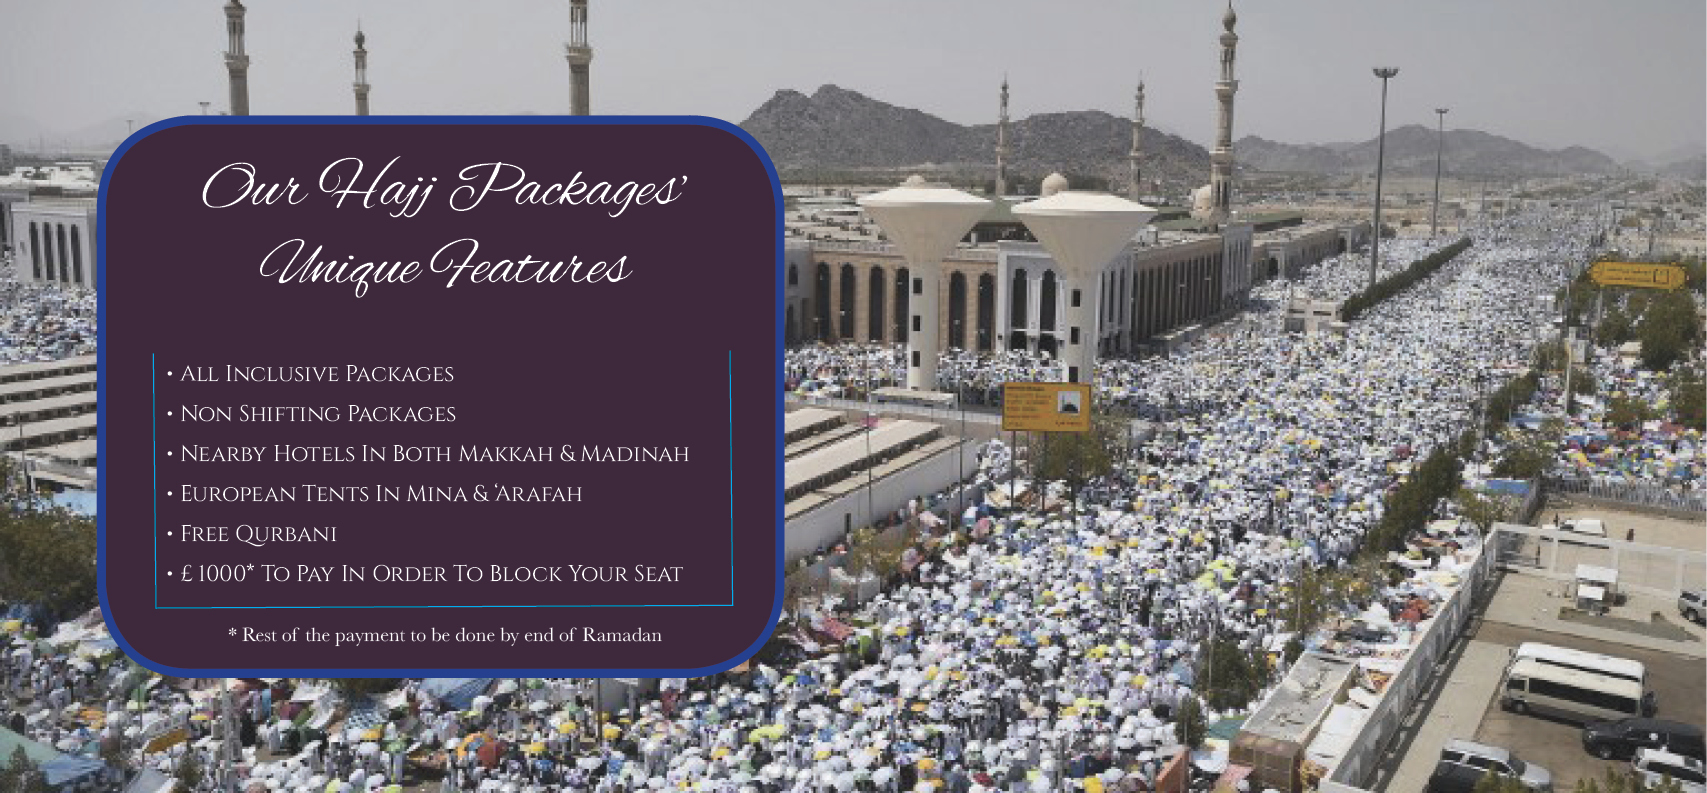 Hajj Packages 2019 | Cheapest Hajj Packages from UK